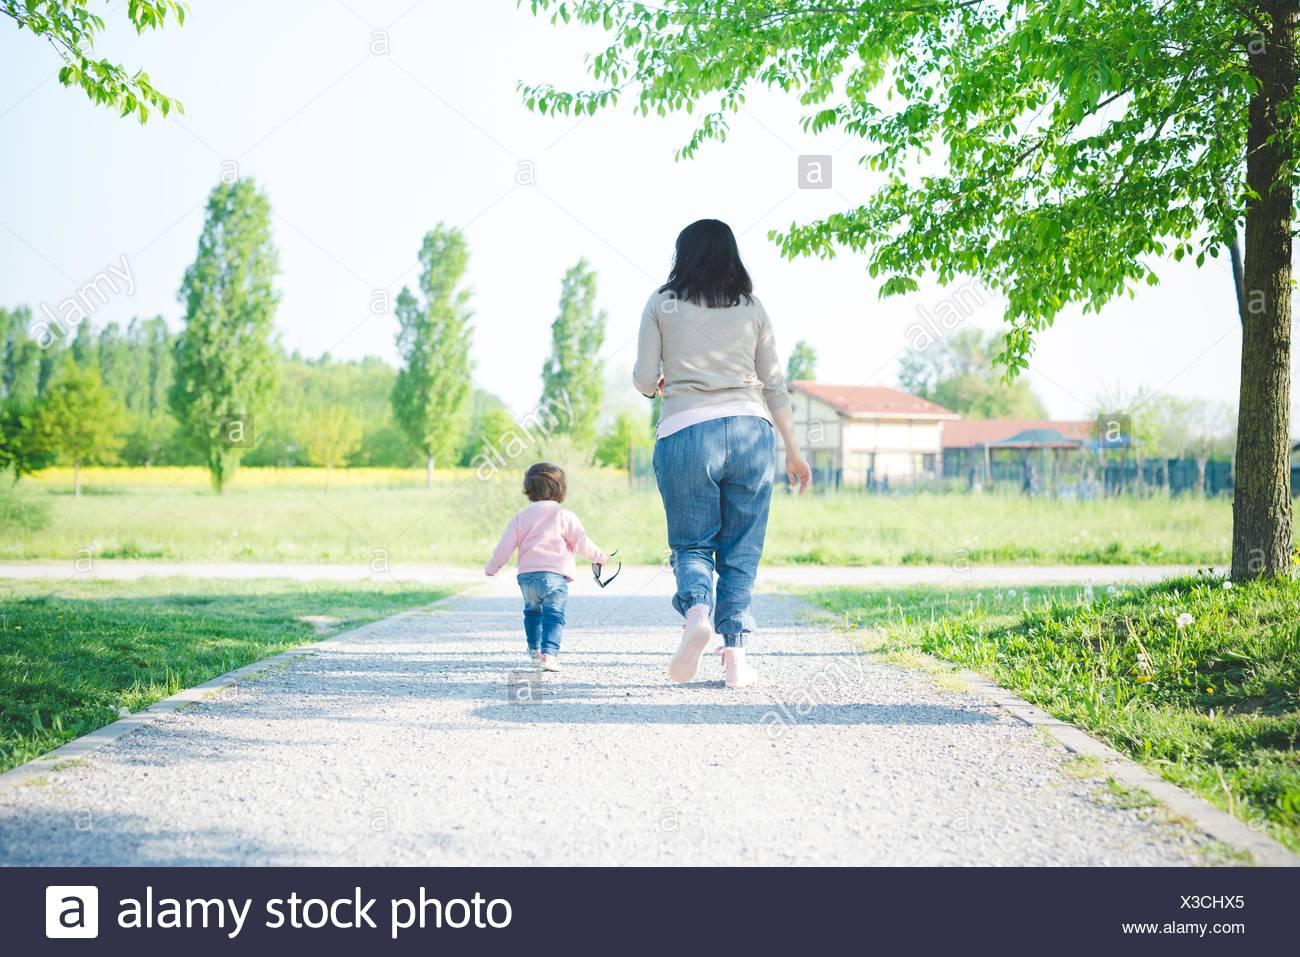 Rear view of female toddler toddling with mother in park - Stock Image